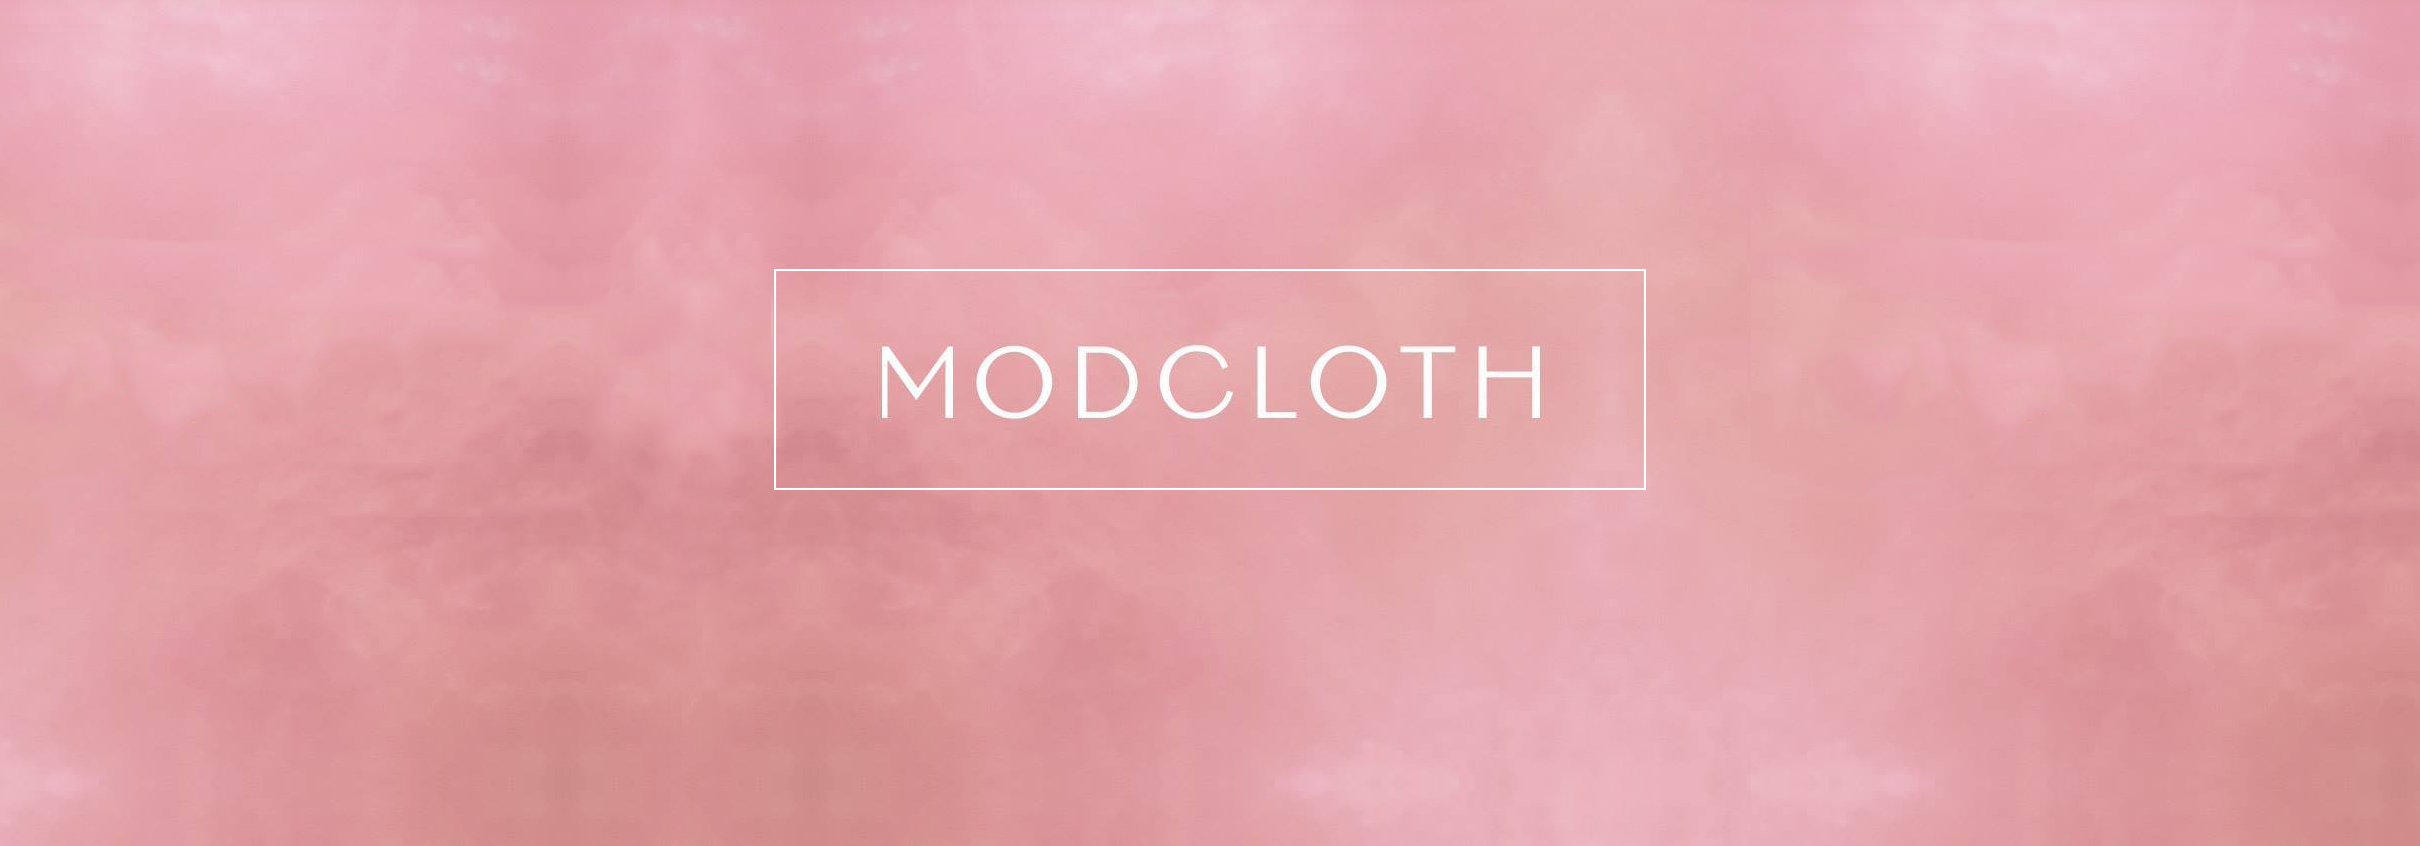 Modcloth Home Decor 7 Ways Modcloth Is Winning At Content Marketing Express